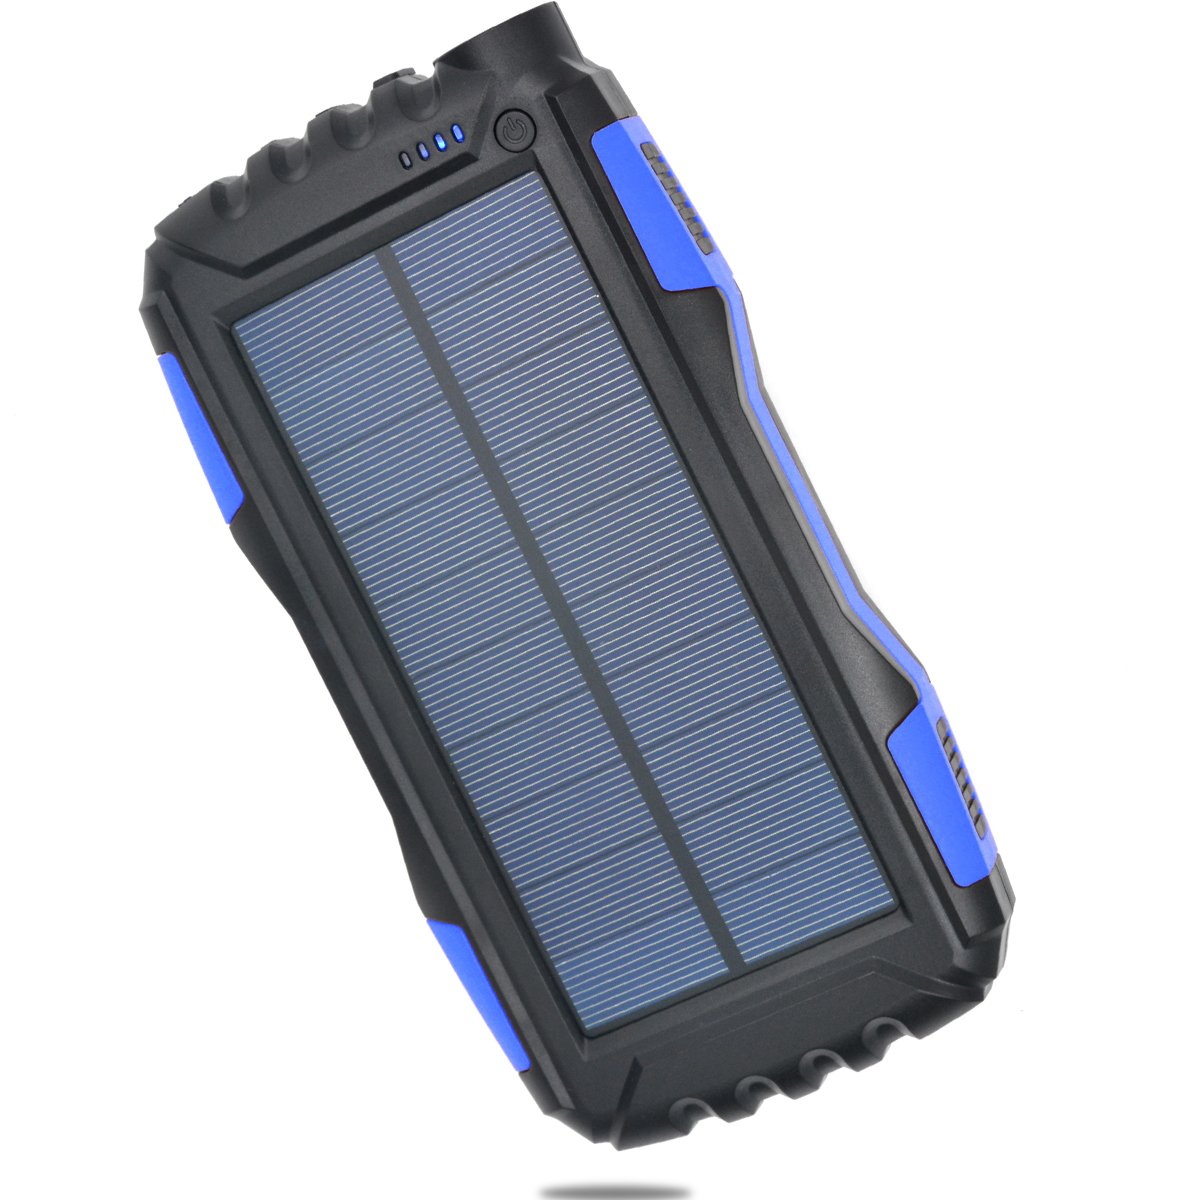 Portable Solar Charger TOENNESEN Power Bank Charger 25000mAh Capacity with LED Flashlight/2 USB Ports for Smartphone/iPhone/Samsung Galaxy/iPad/GoPro Camera/GPS(black+blue)